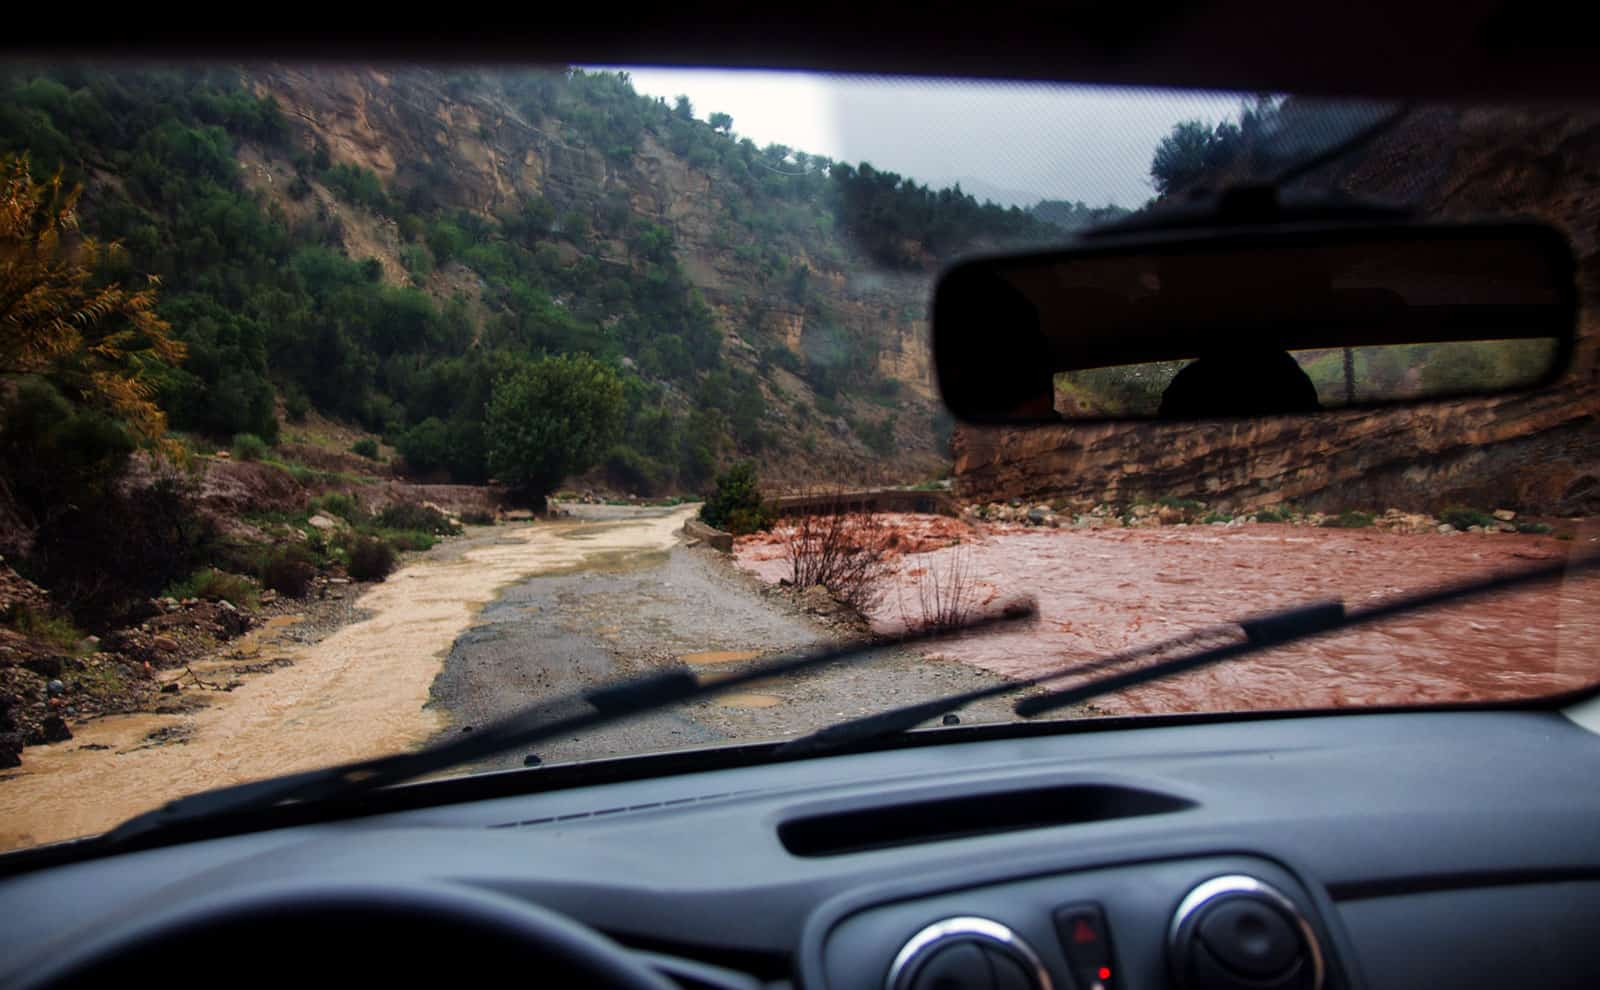 Last day of the trip we were bored with rain so we went for a little drive up into the mountains. I soon got really interesting...